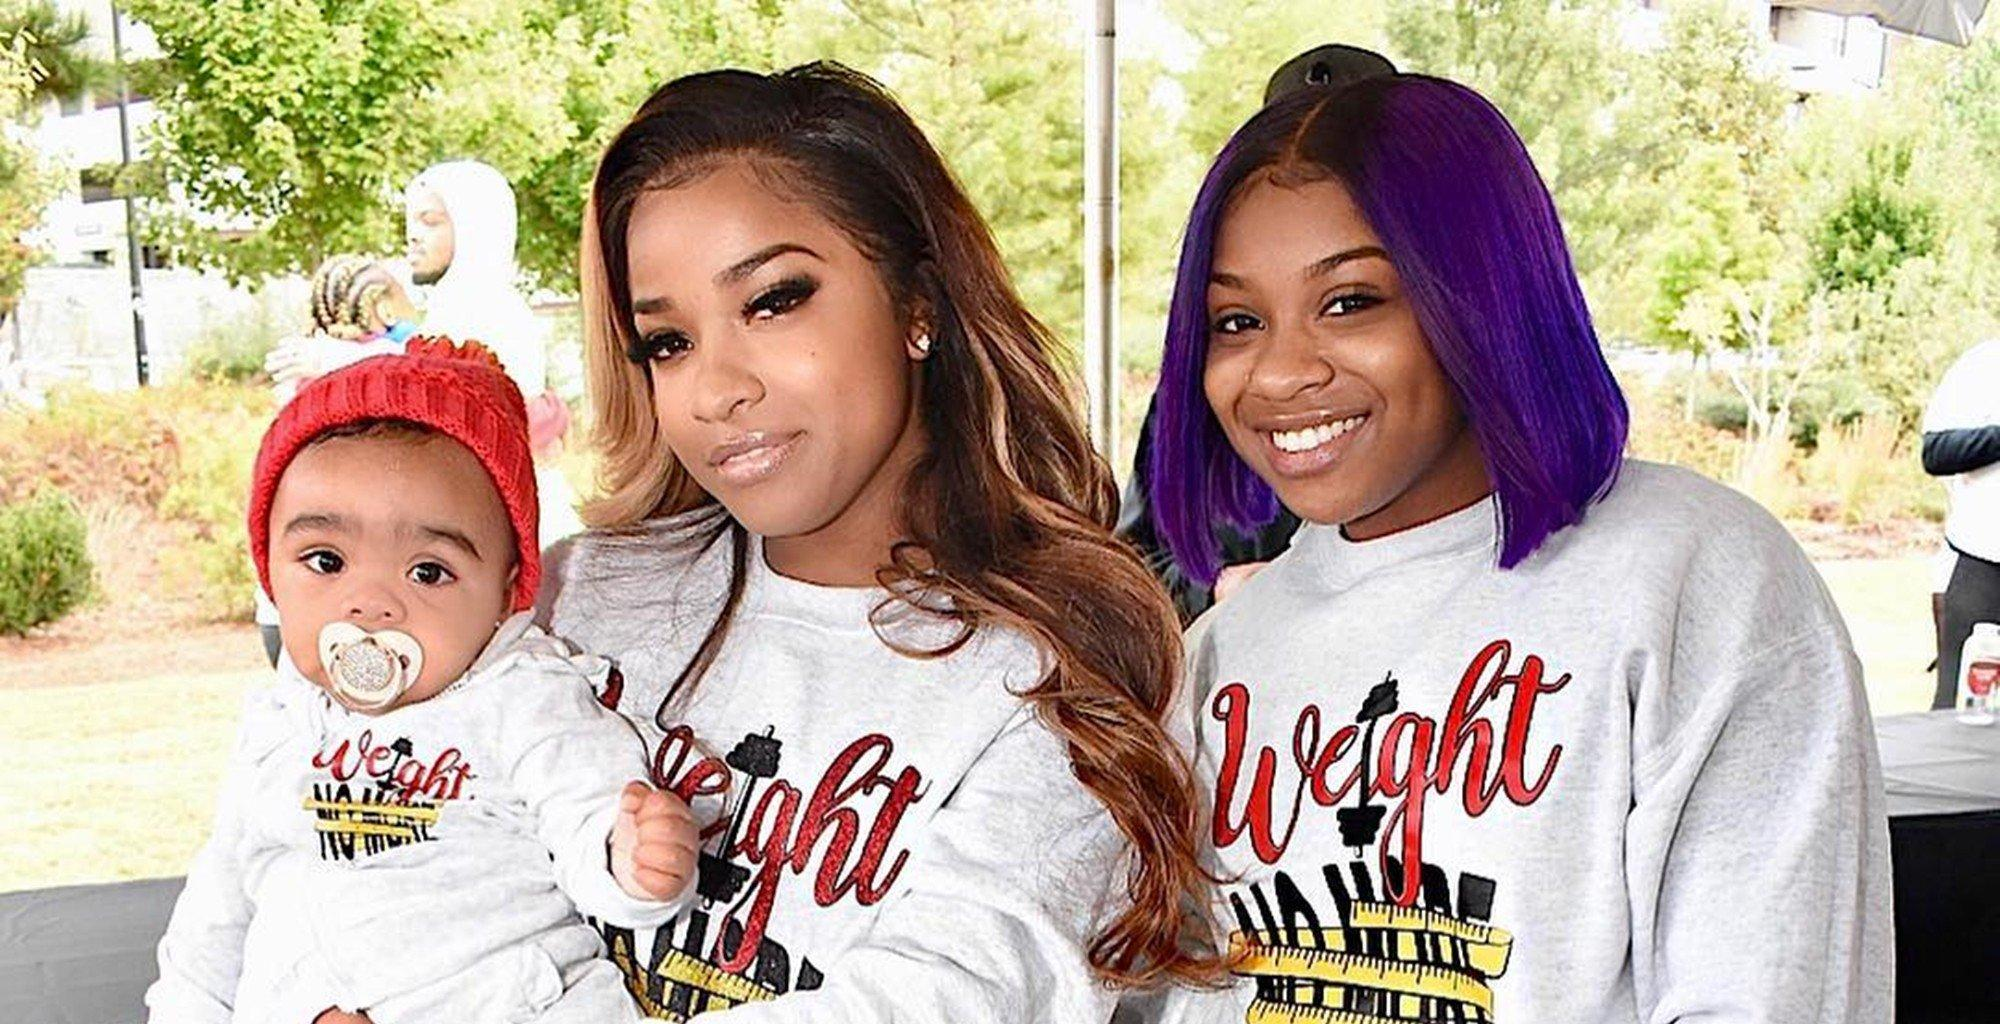 Toya Wright Reveals The Three Cities Left On The 'Weight No More' Tour